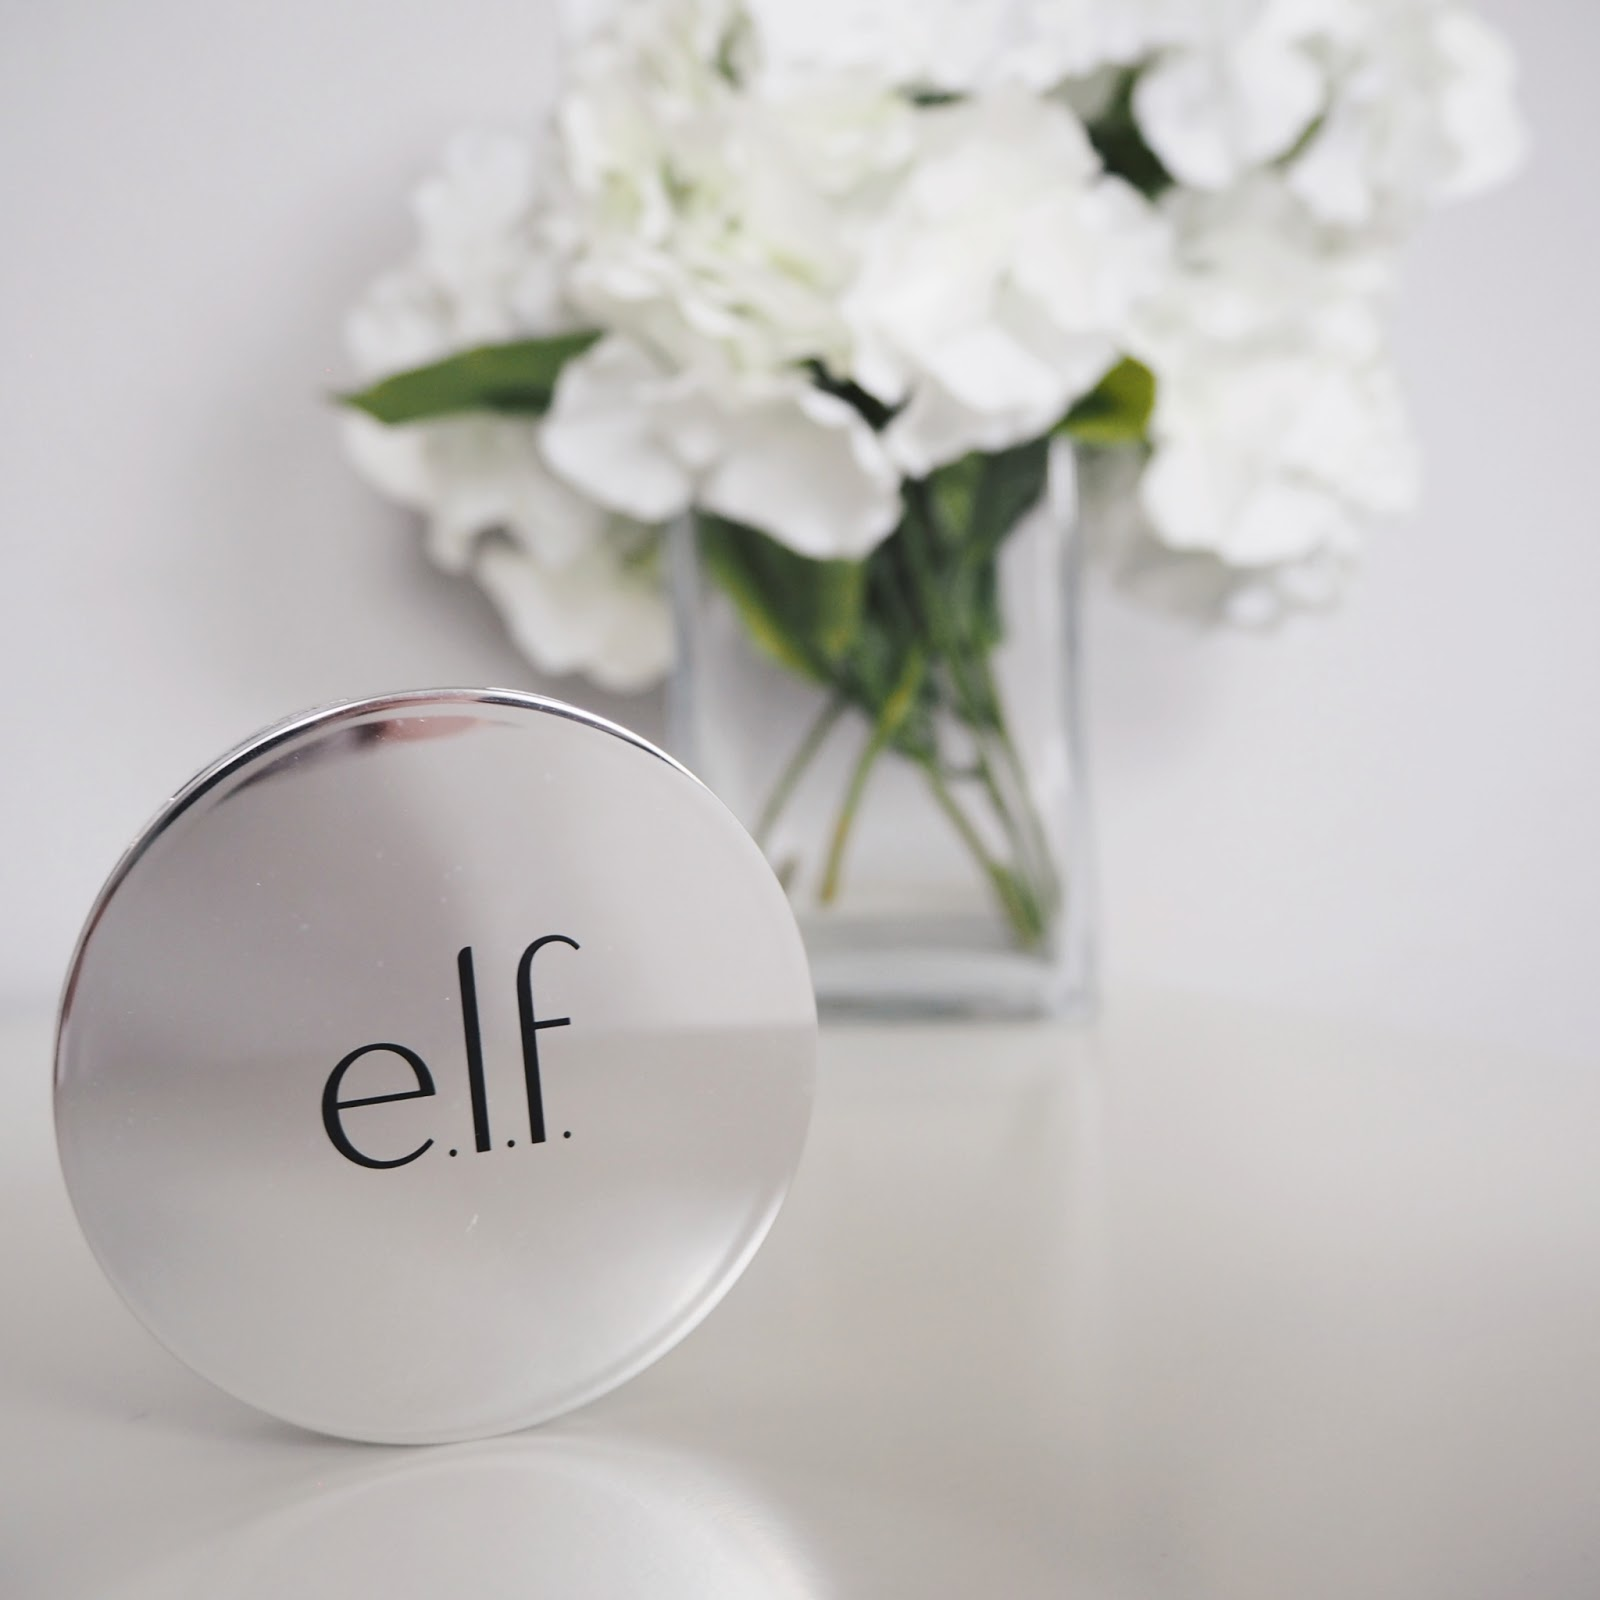 e.l.f Finishing Powder